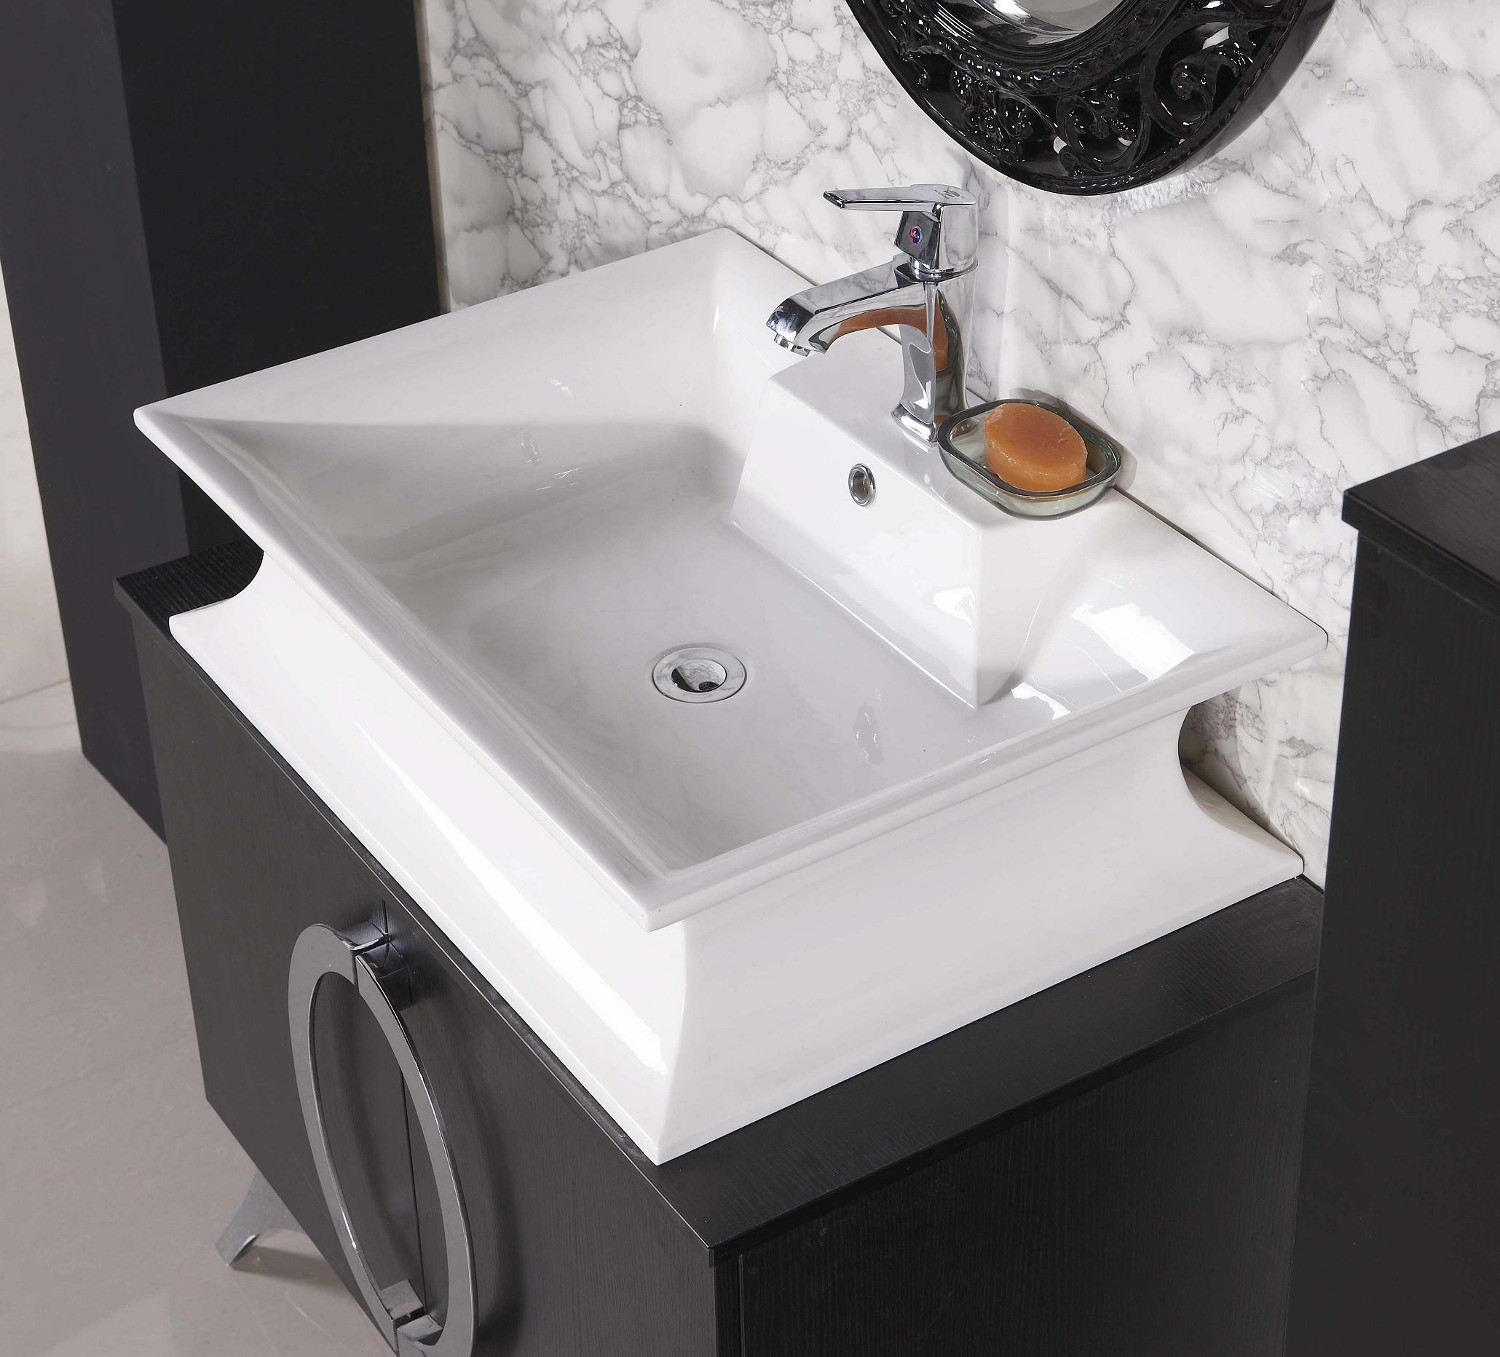 Modern bathroom vanity paris iii - Designer sink image ...